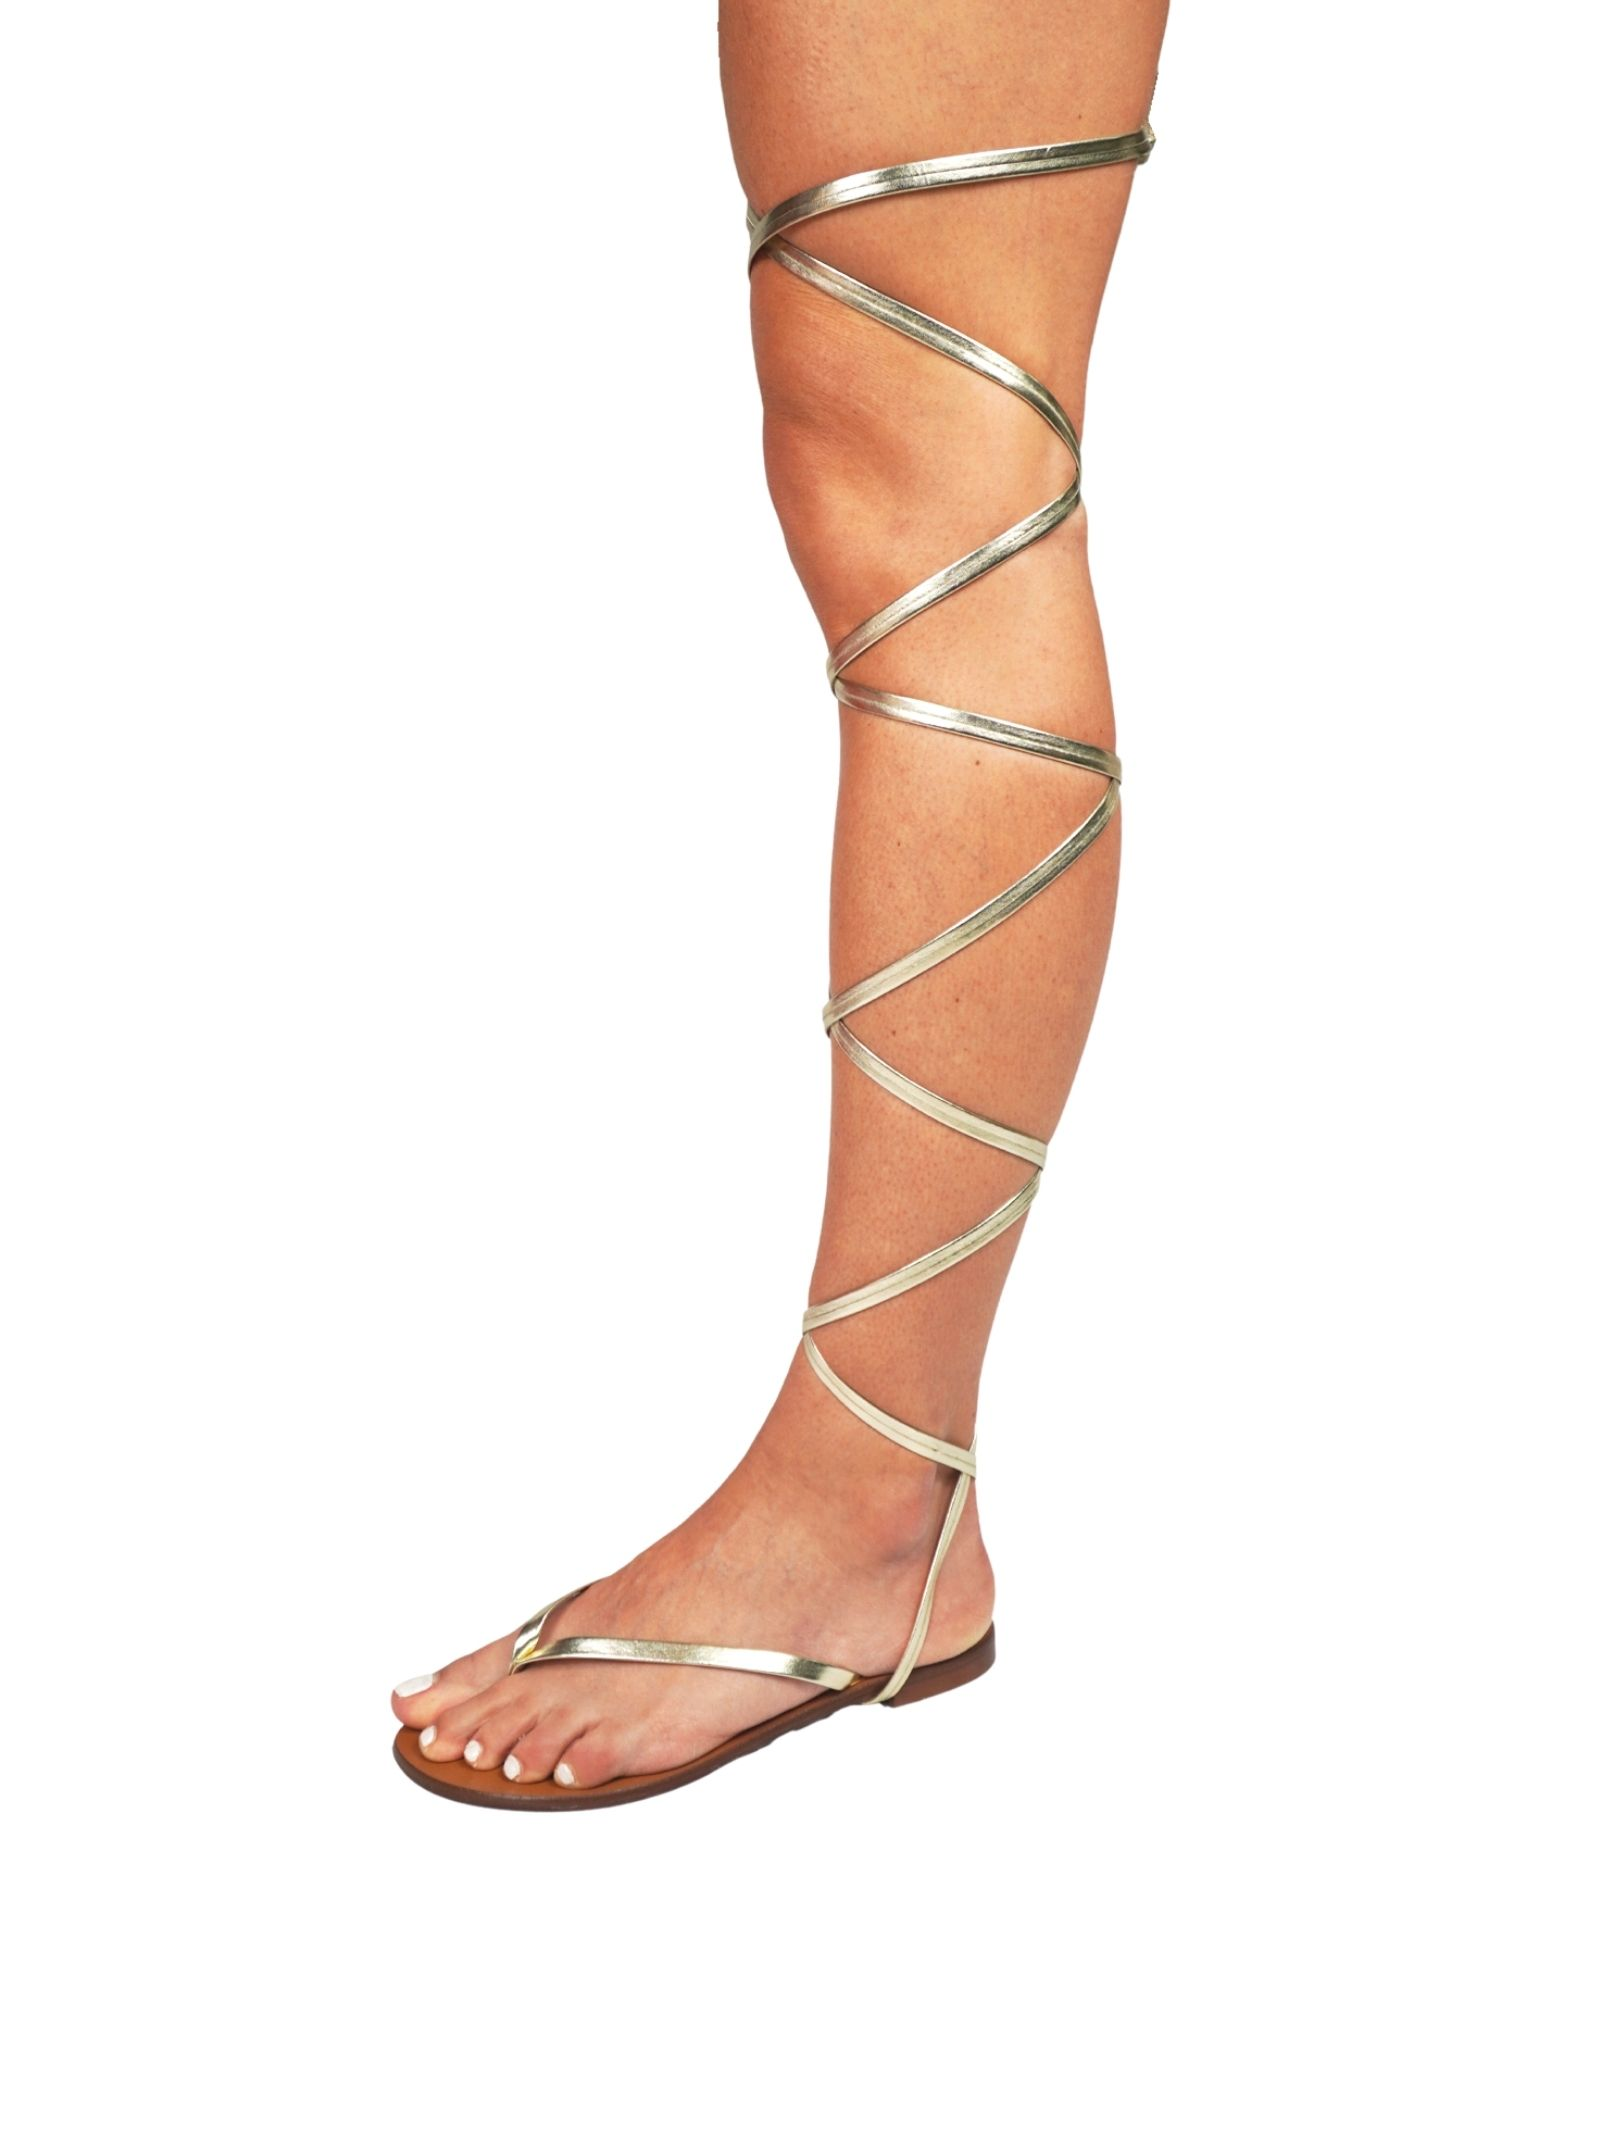 Women's Shoes Flat Flip Flops Sandals in Platinum Eco Leather with Long Laces up to the Knee Sandro Rosi | Flat sandals | 3295600